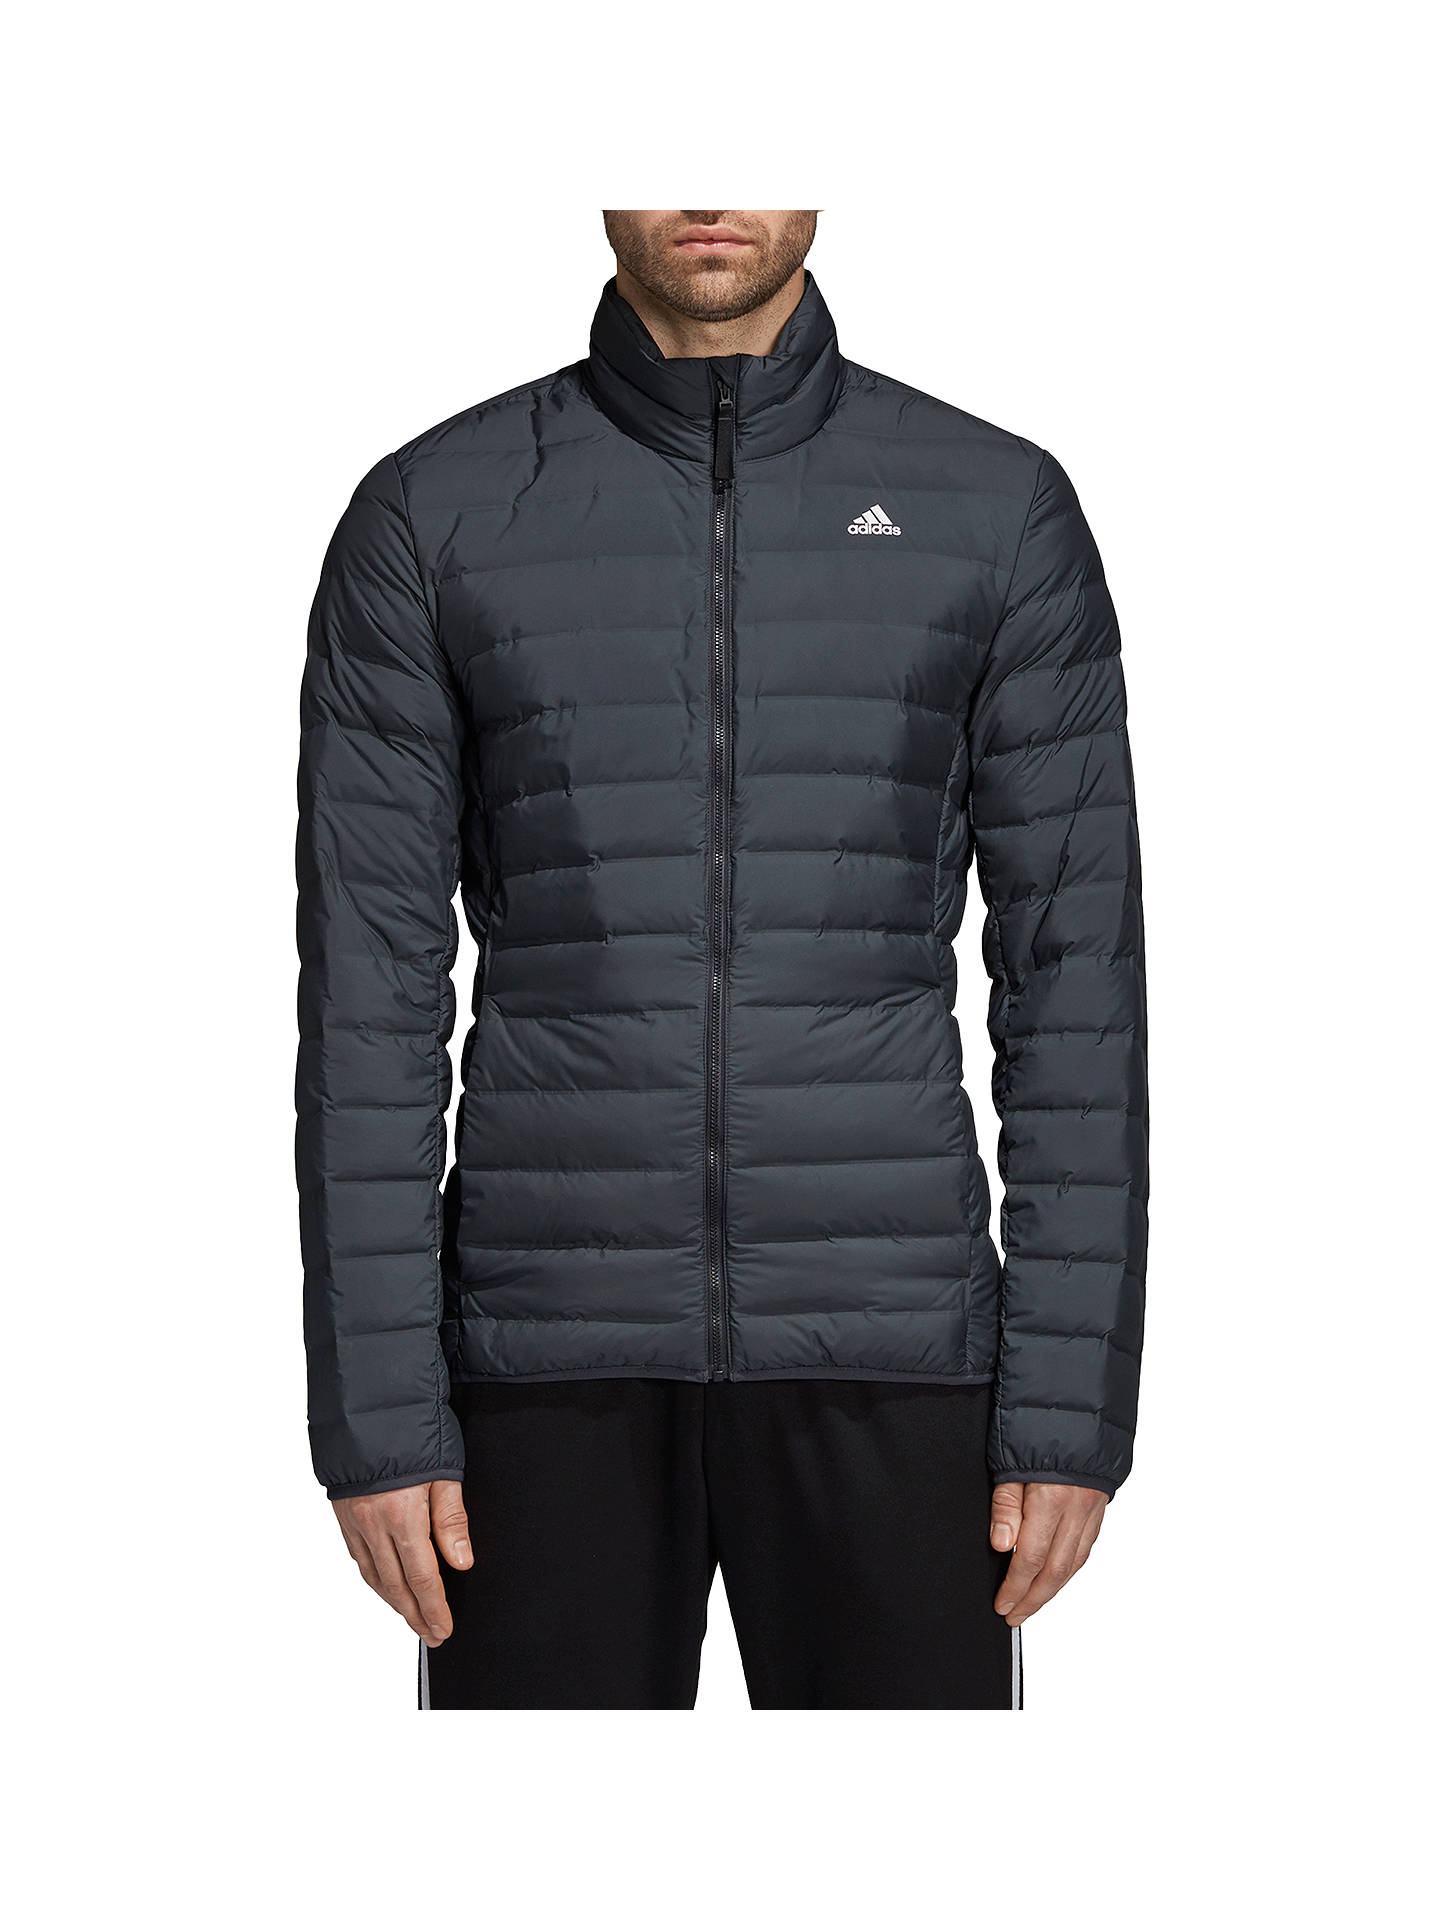 detailed look 9cc3d b901c Buyadidas Varilite Down Long Sleeve Mens Puffer Jacket, Carbon, S Online  at johnlewis.